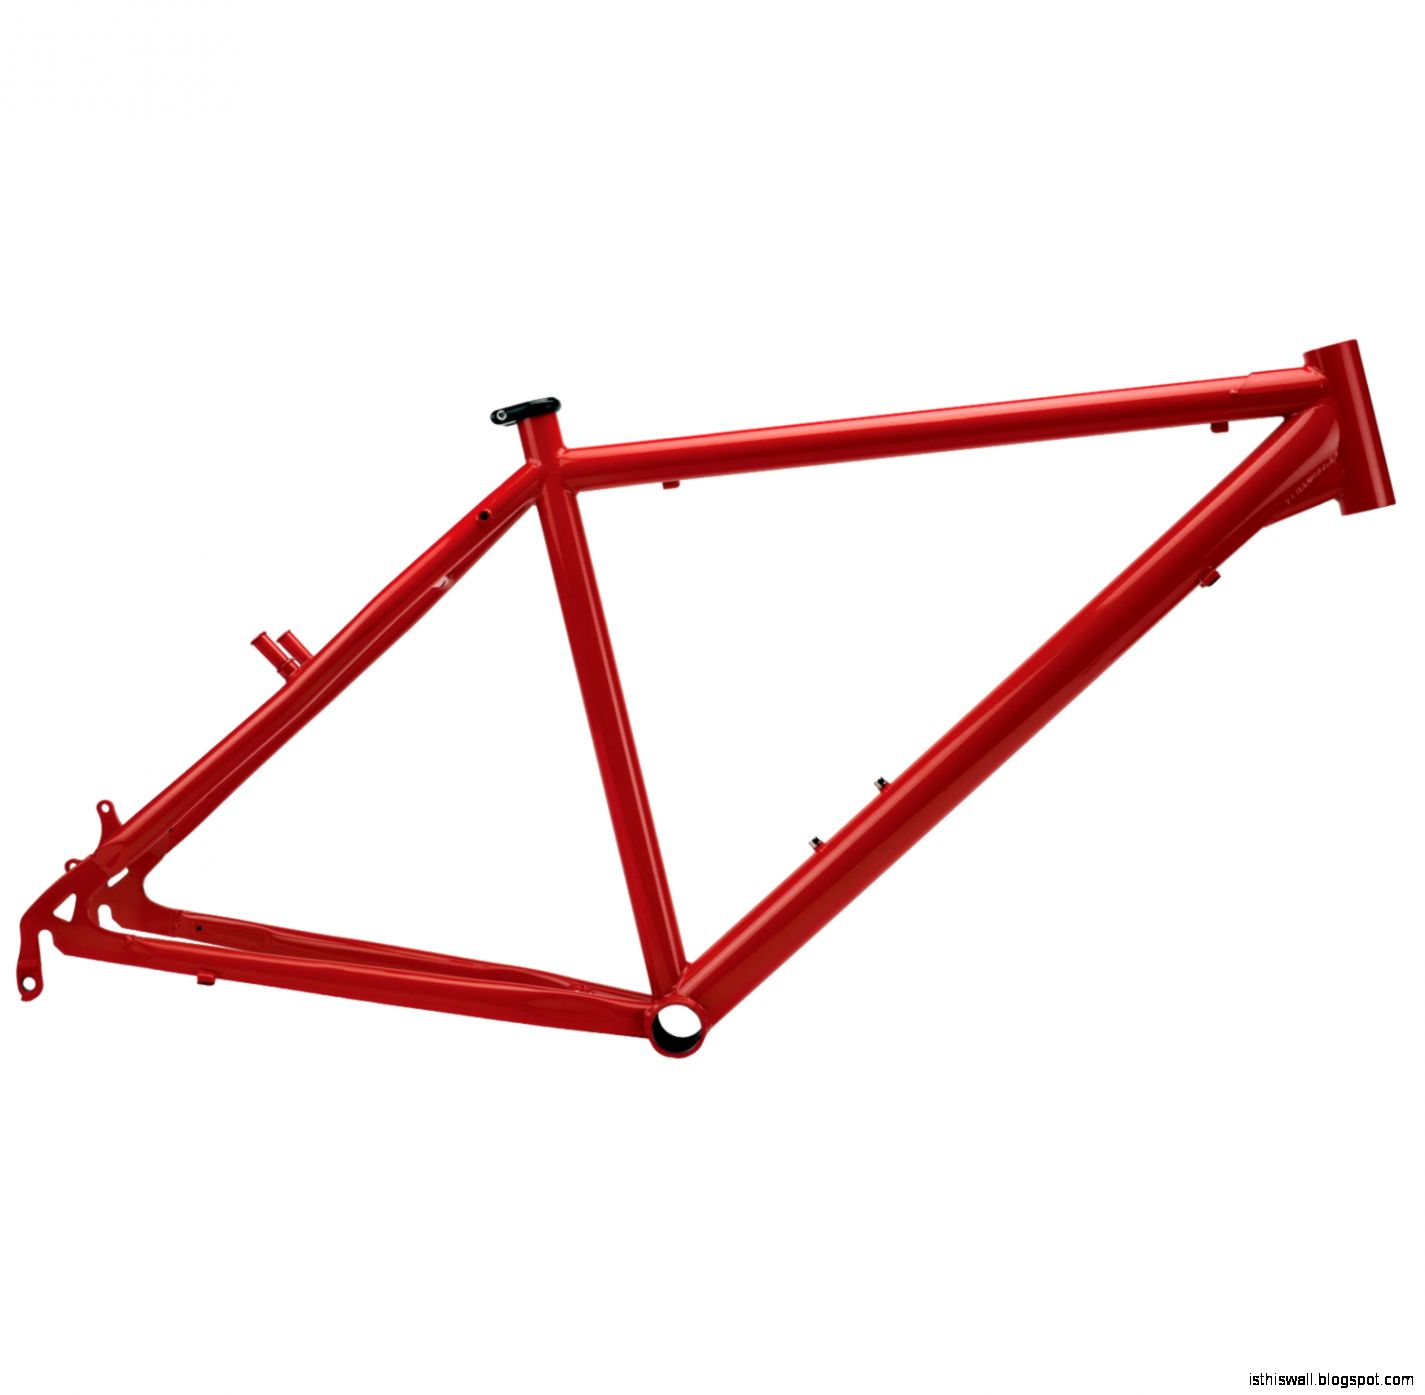 Nashbar Mountain Bike Frame